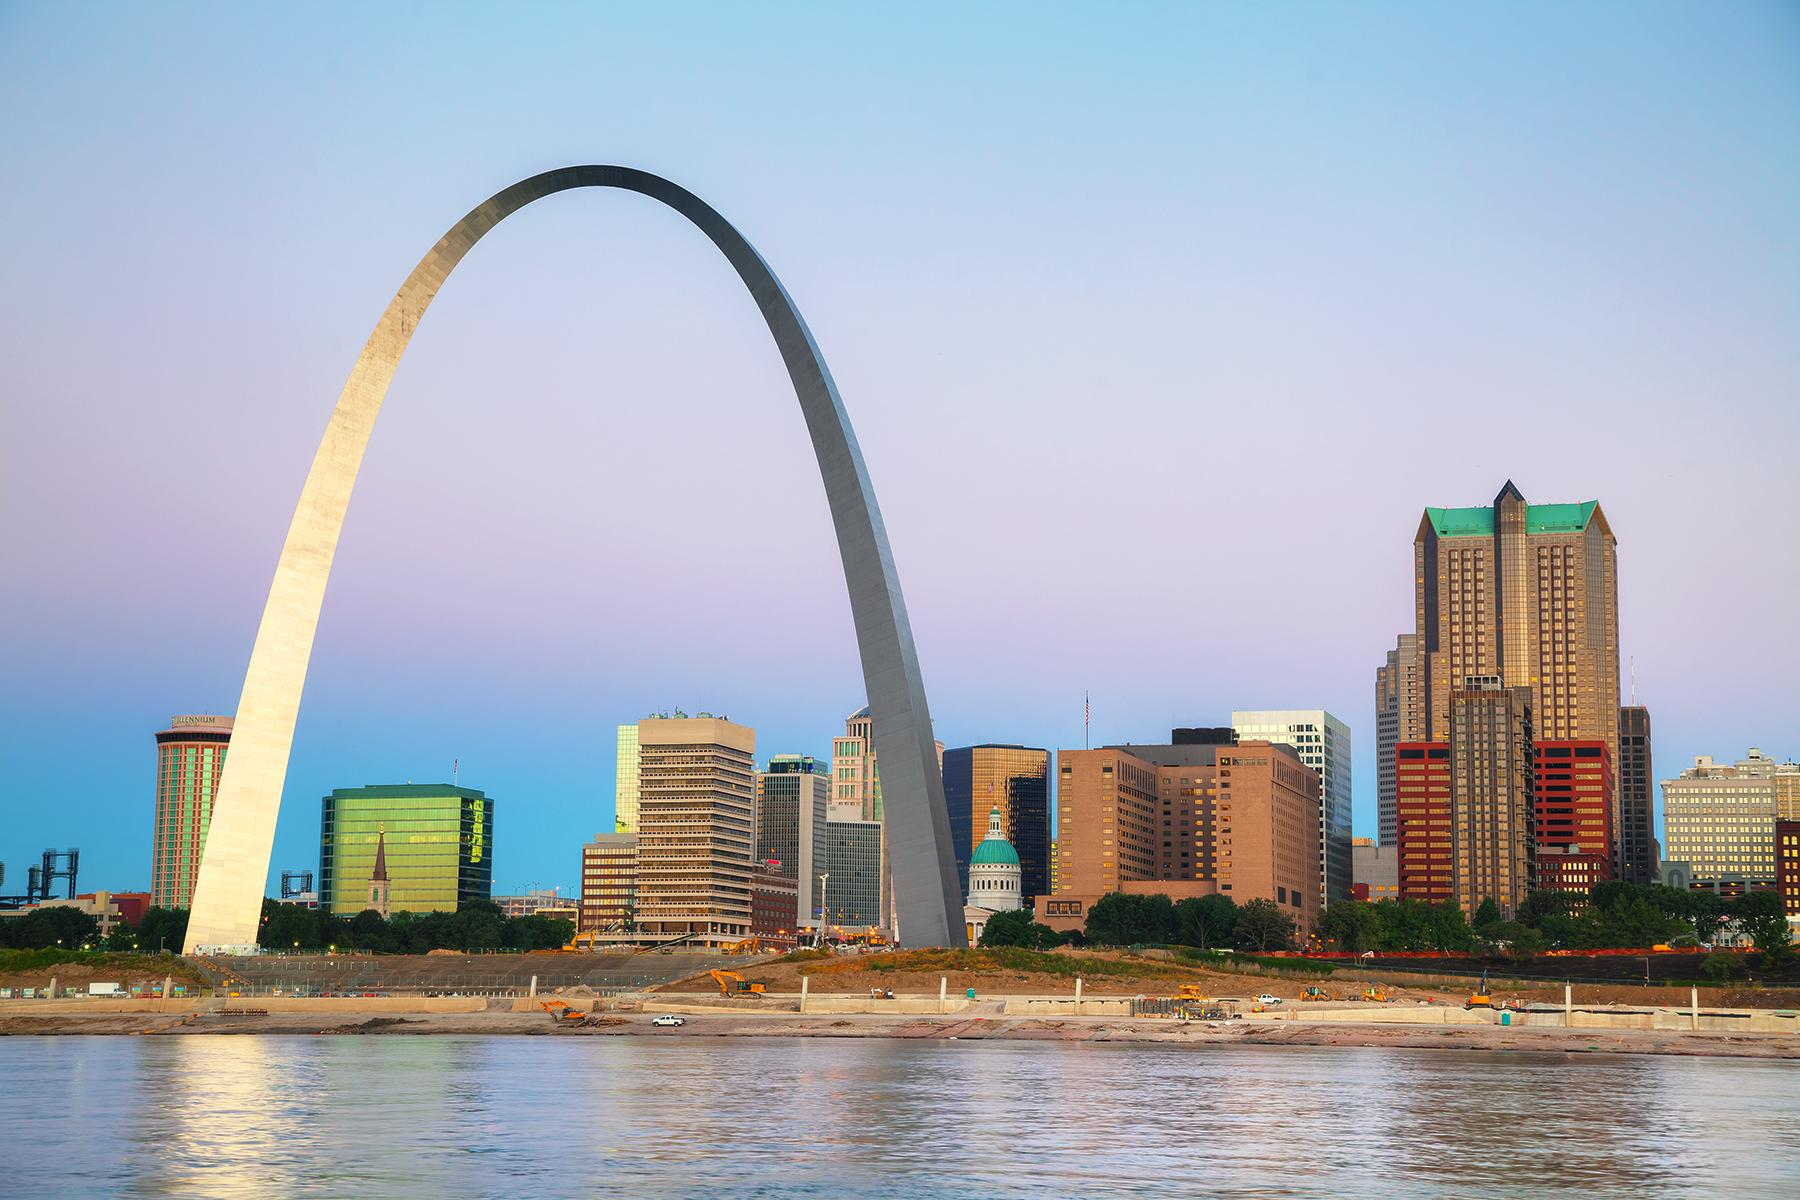 The Most Famous American Landmarks